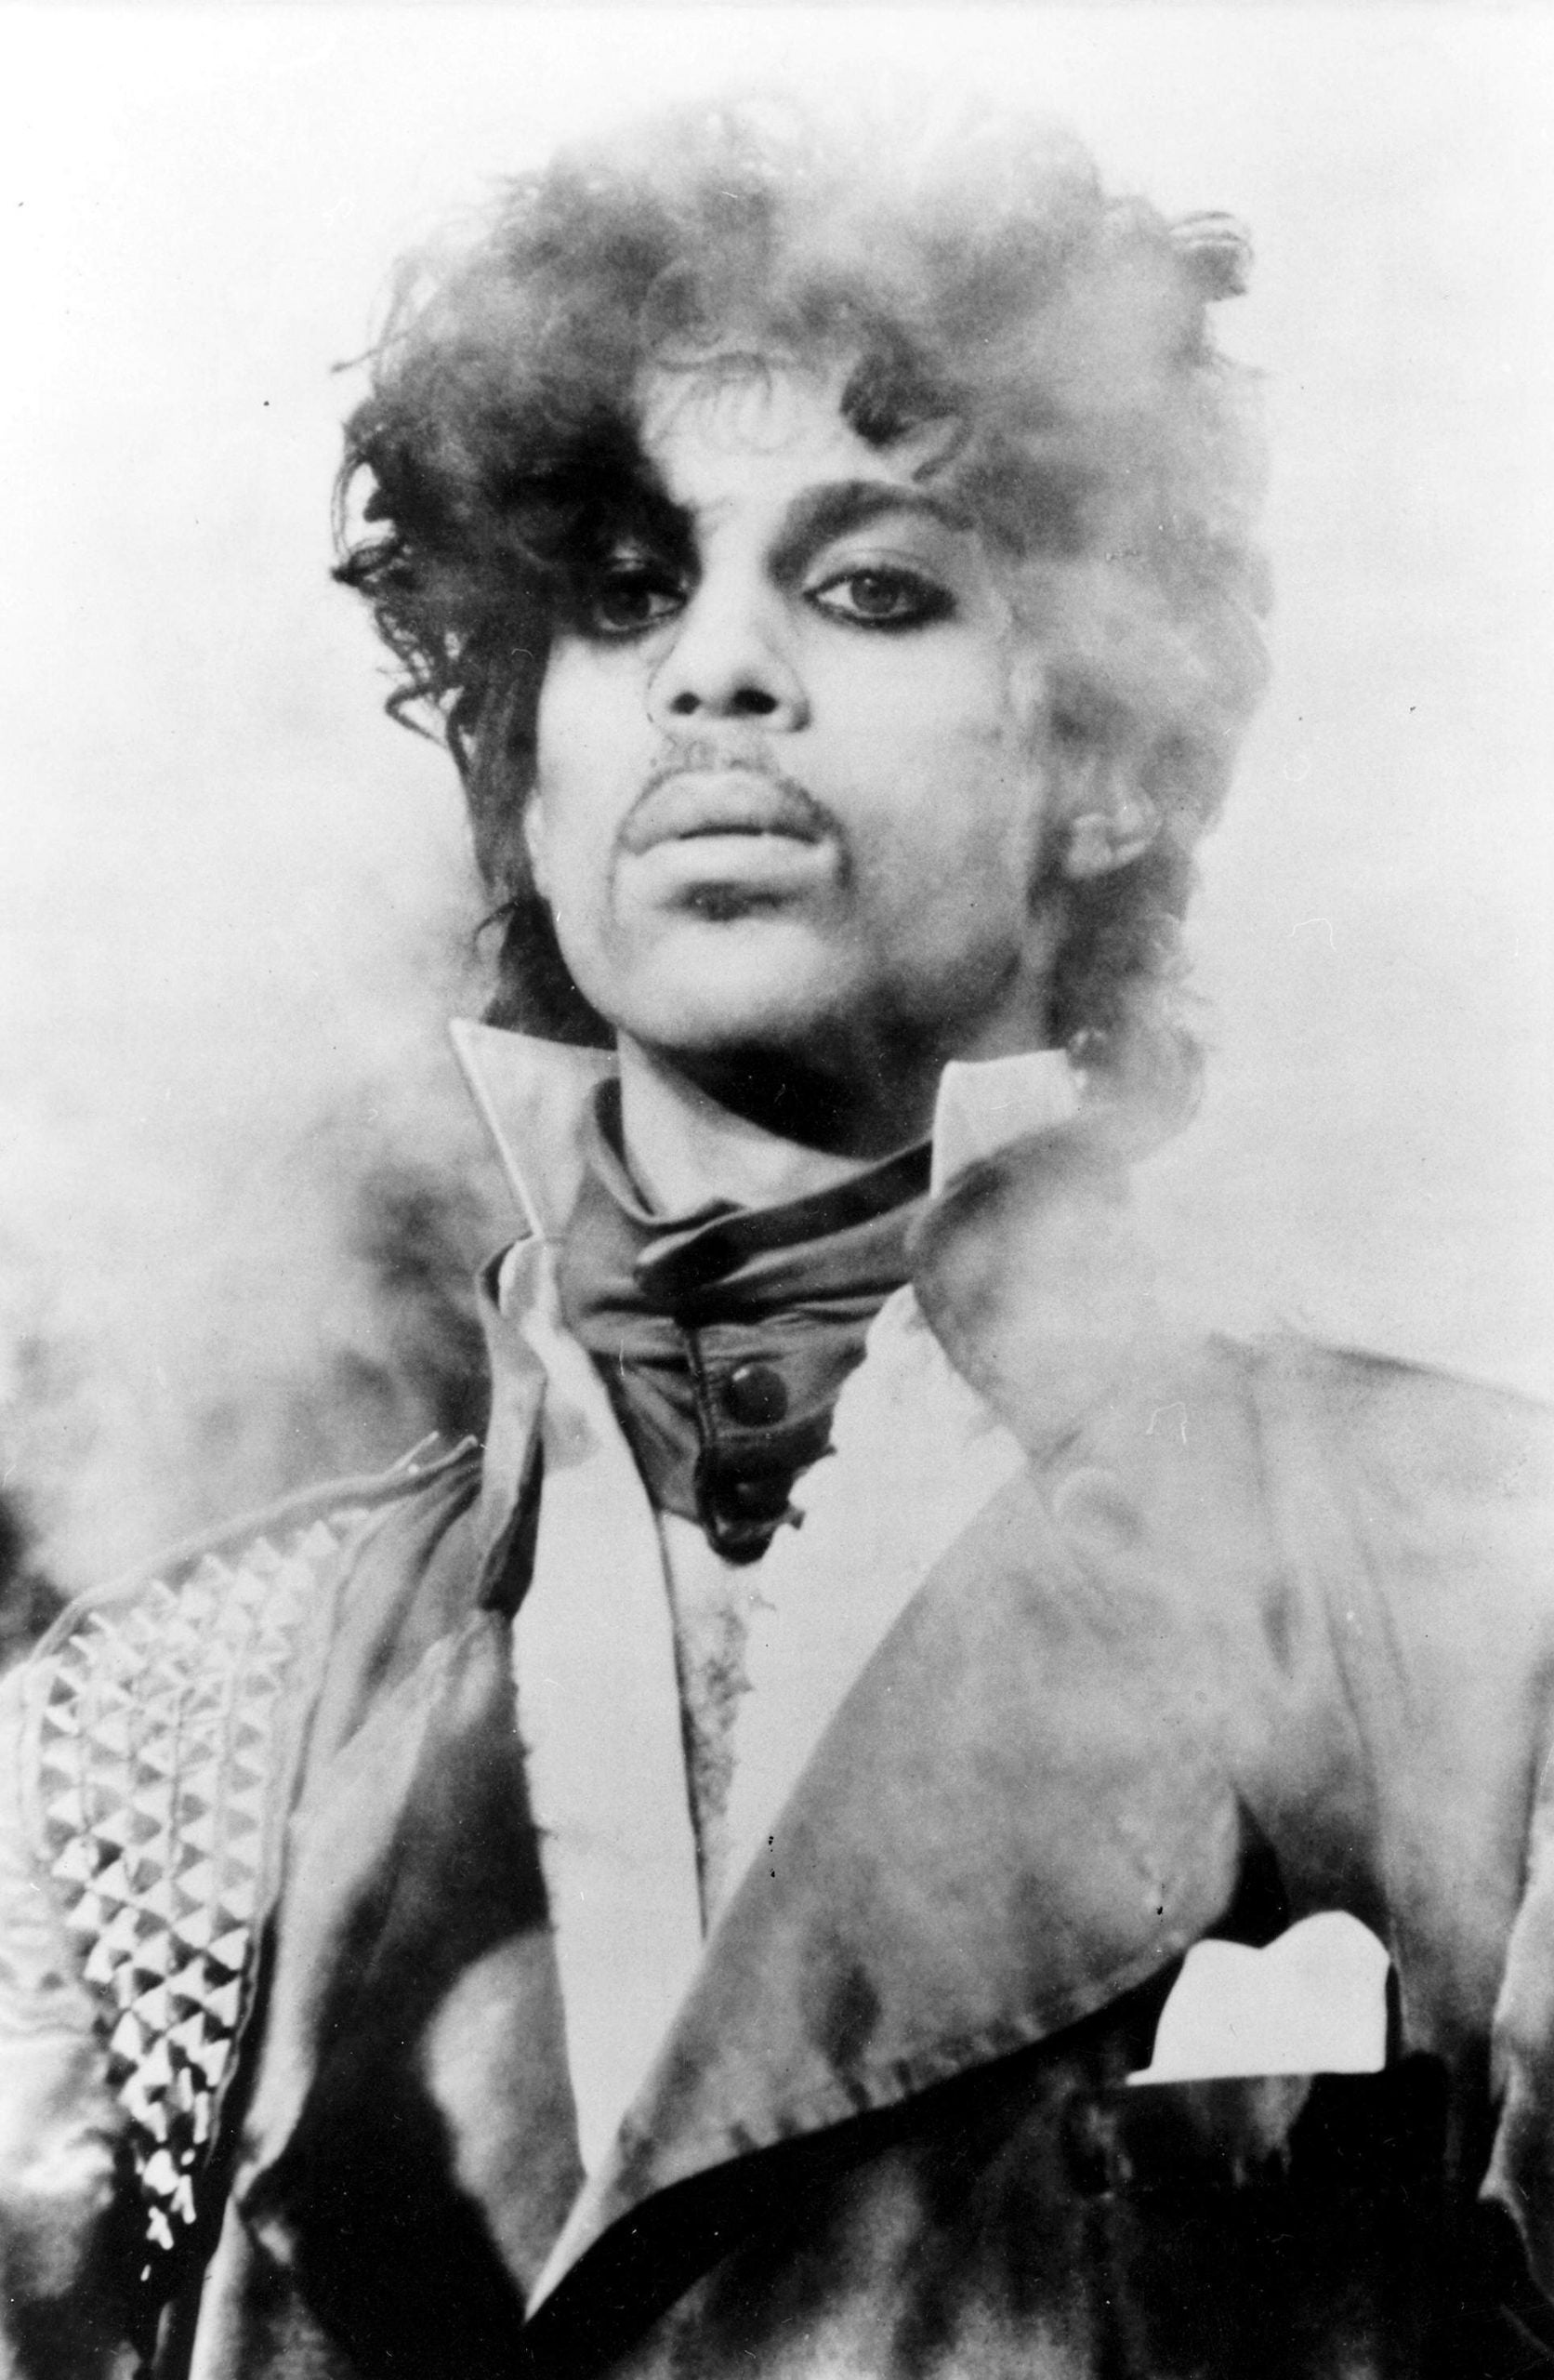 """Terence Trent D'Arby on Prince: """"I planted a nice, wet kiss right on his forehead"""""""